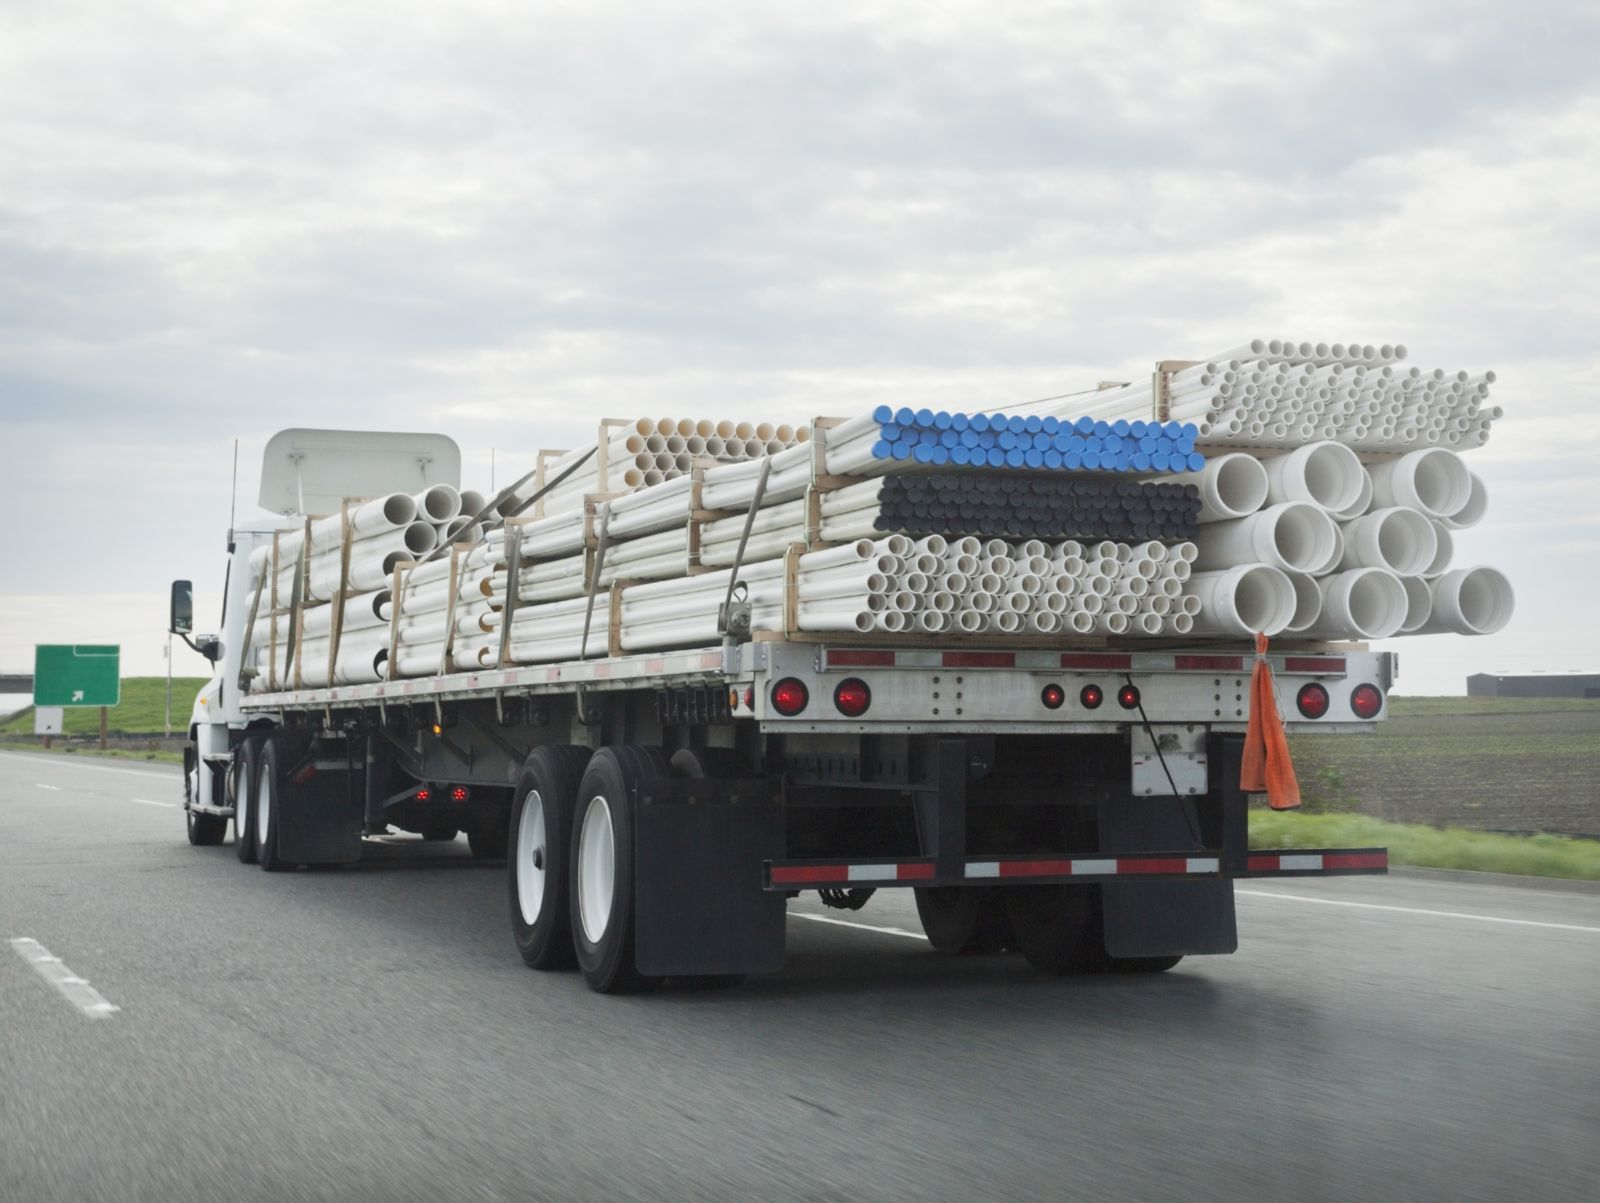 Large Truck Carrying Cargo